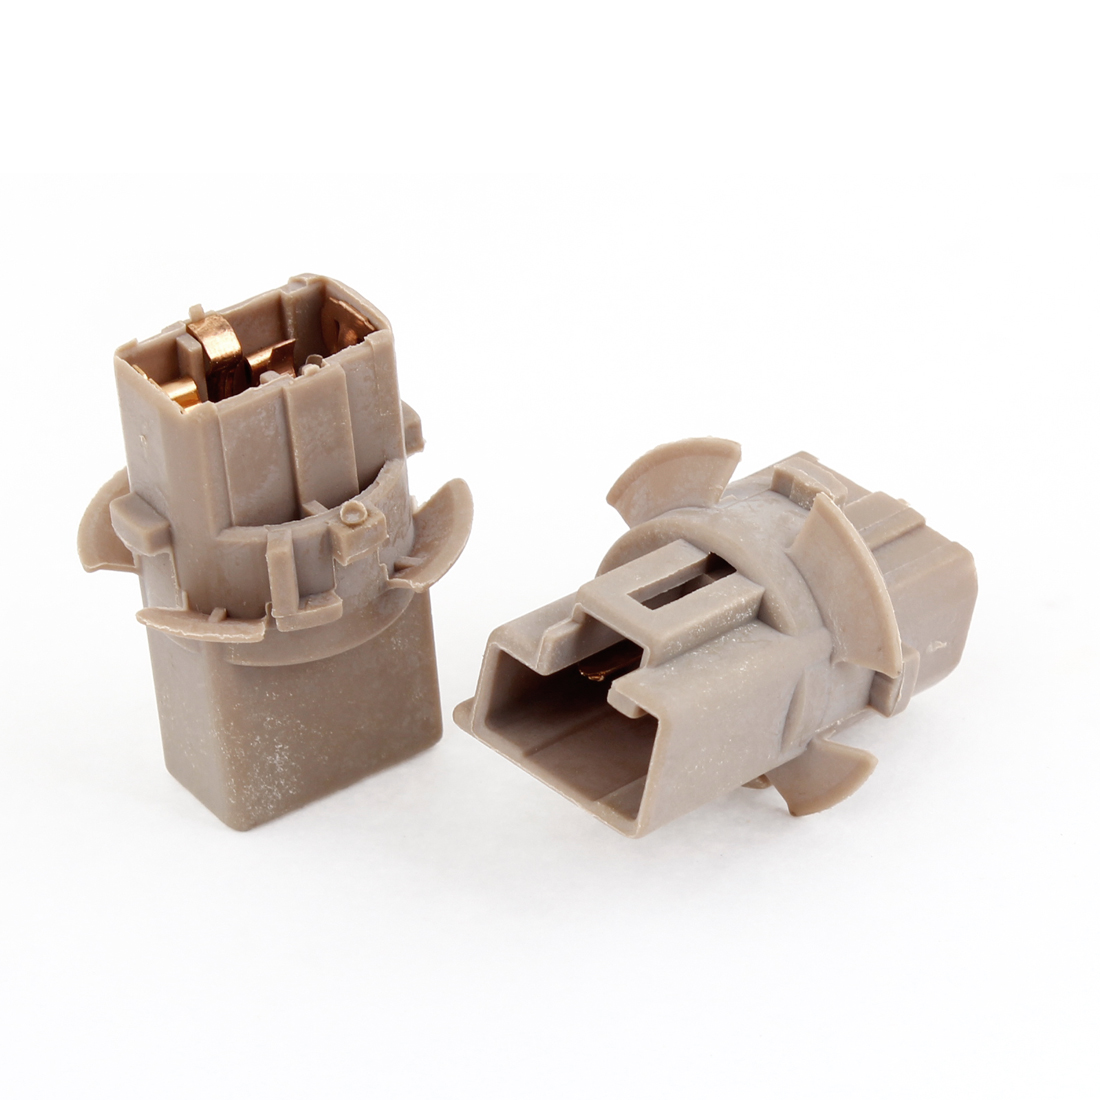 2pcs Brown Plastic Brake Turn Light Socket Connector T20 for Car